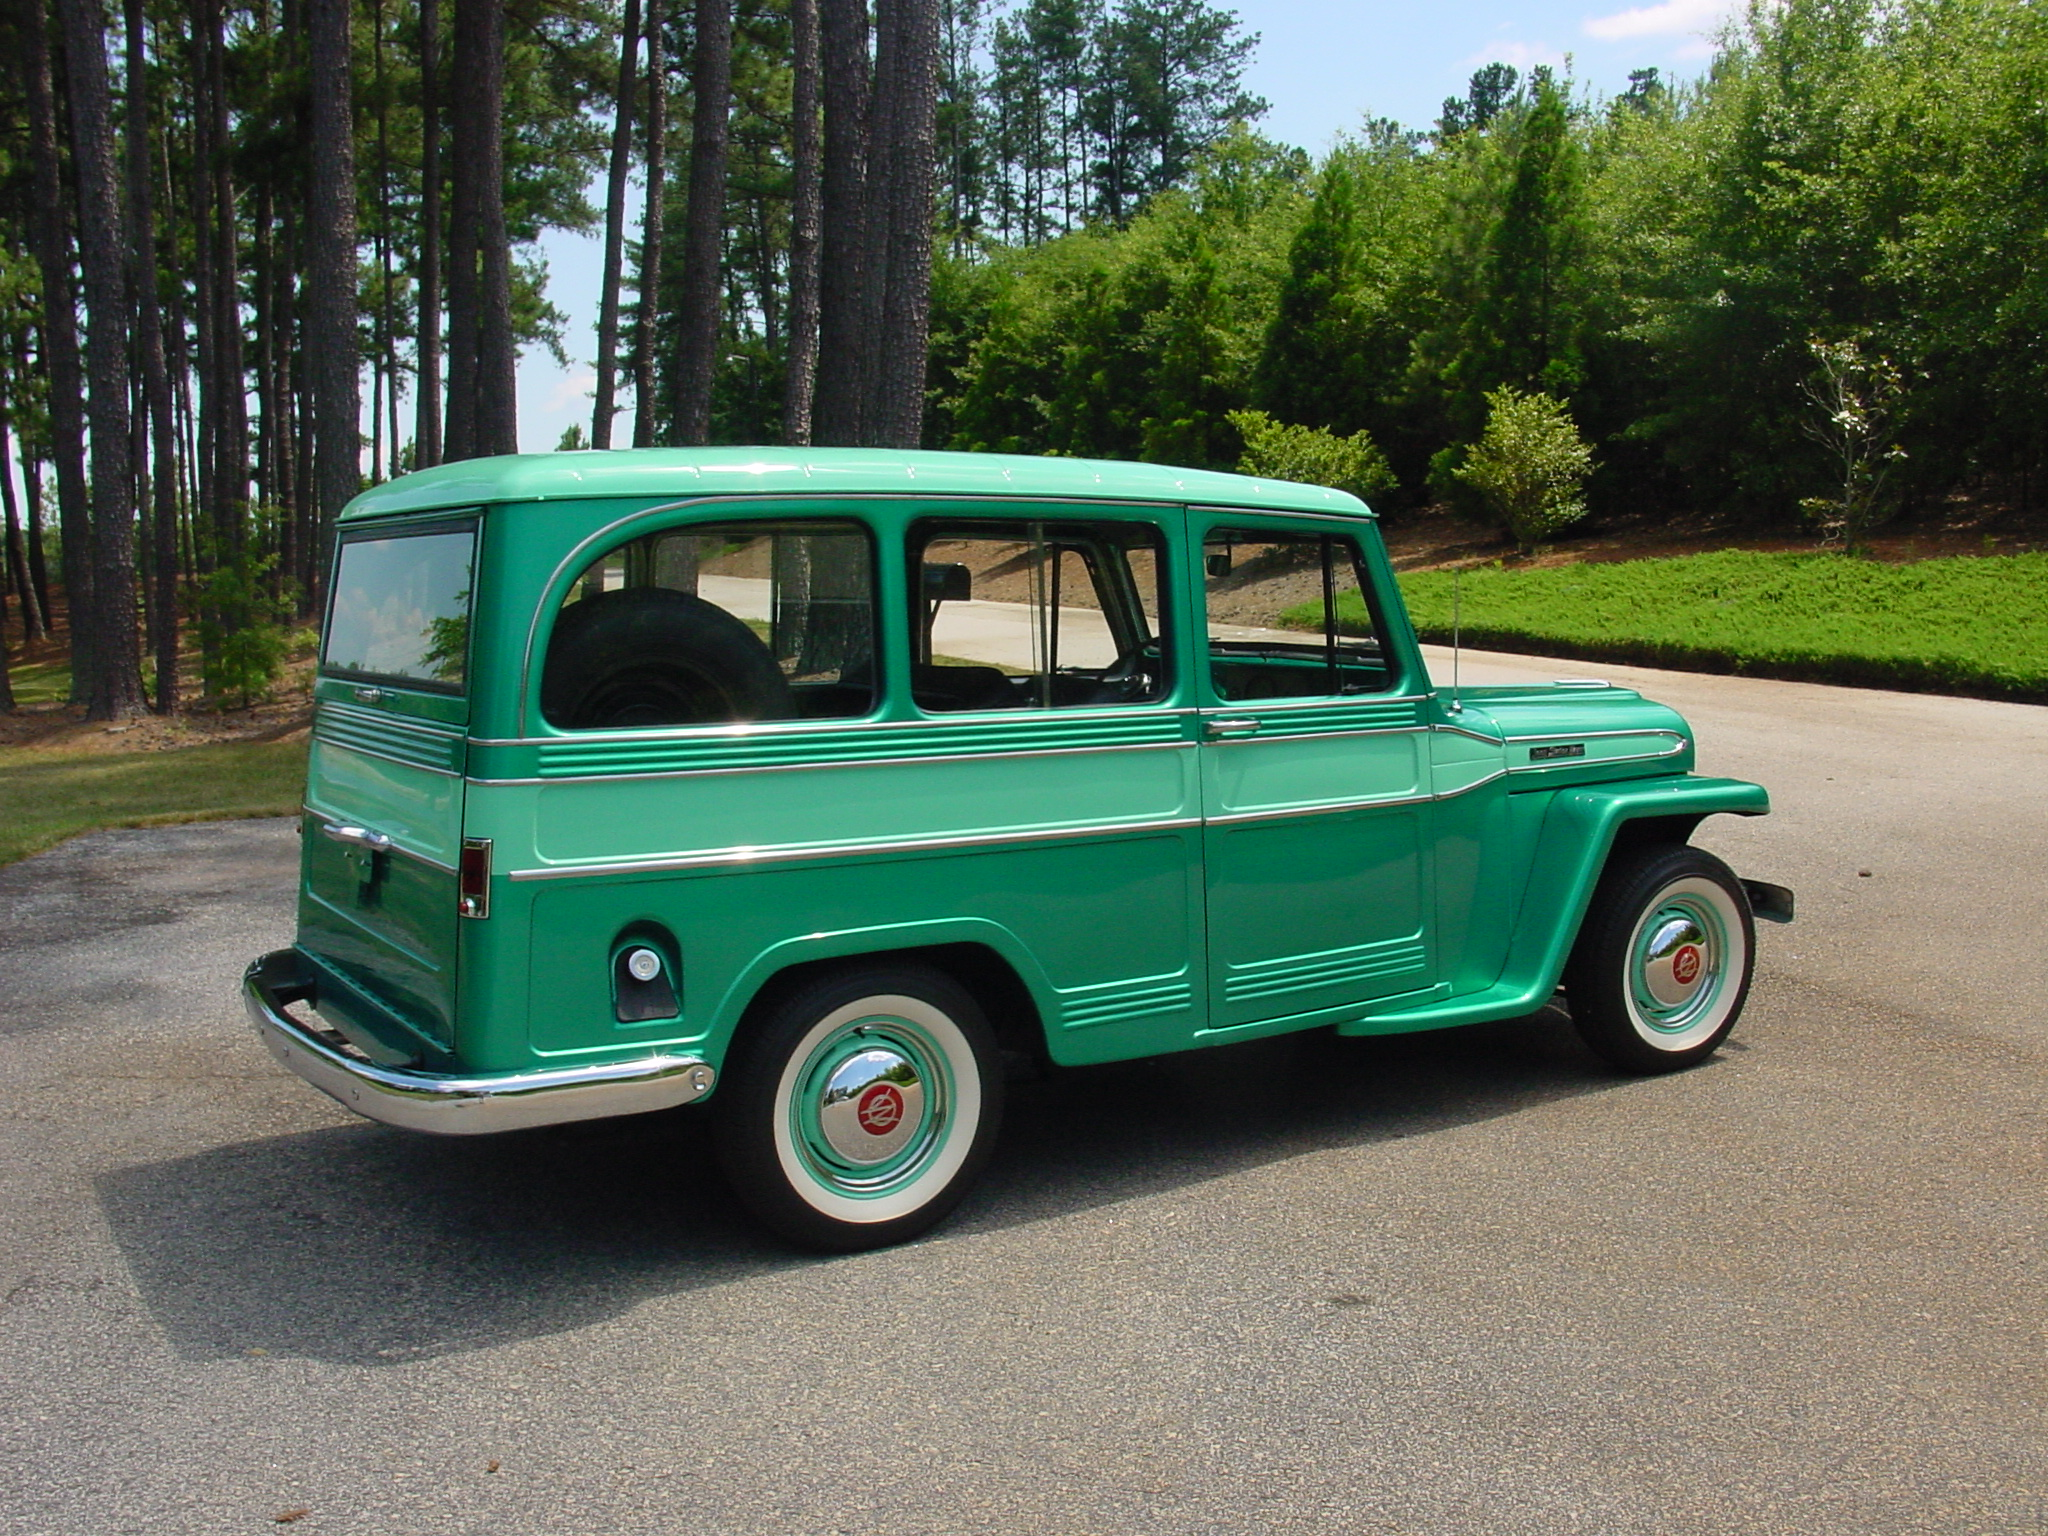 Willys Related Imagesstart 300 Weili Automotive Network 1960 Jeep For Sale Used 19 60 Station Wagon